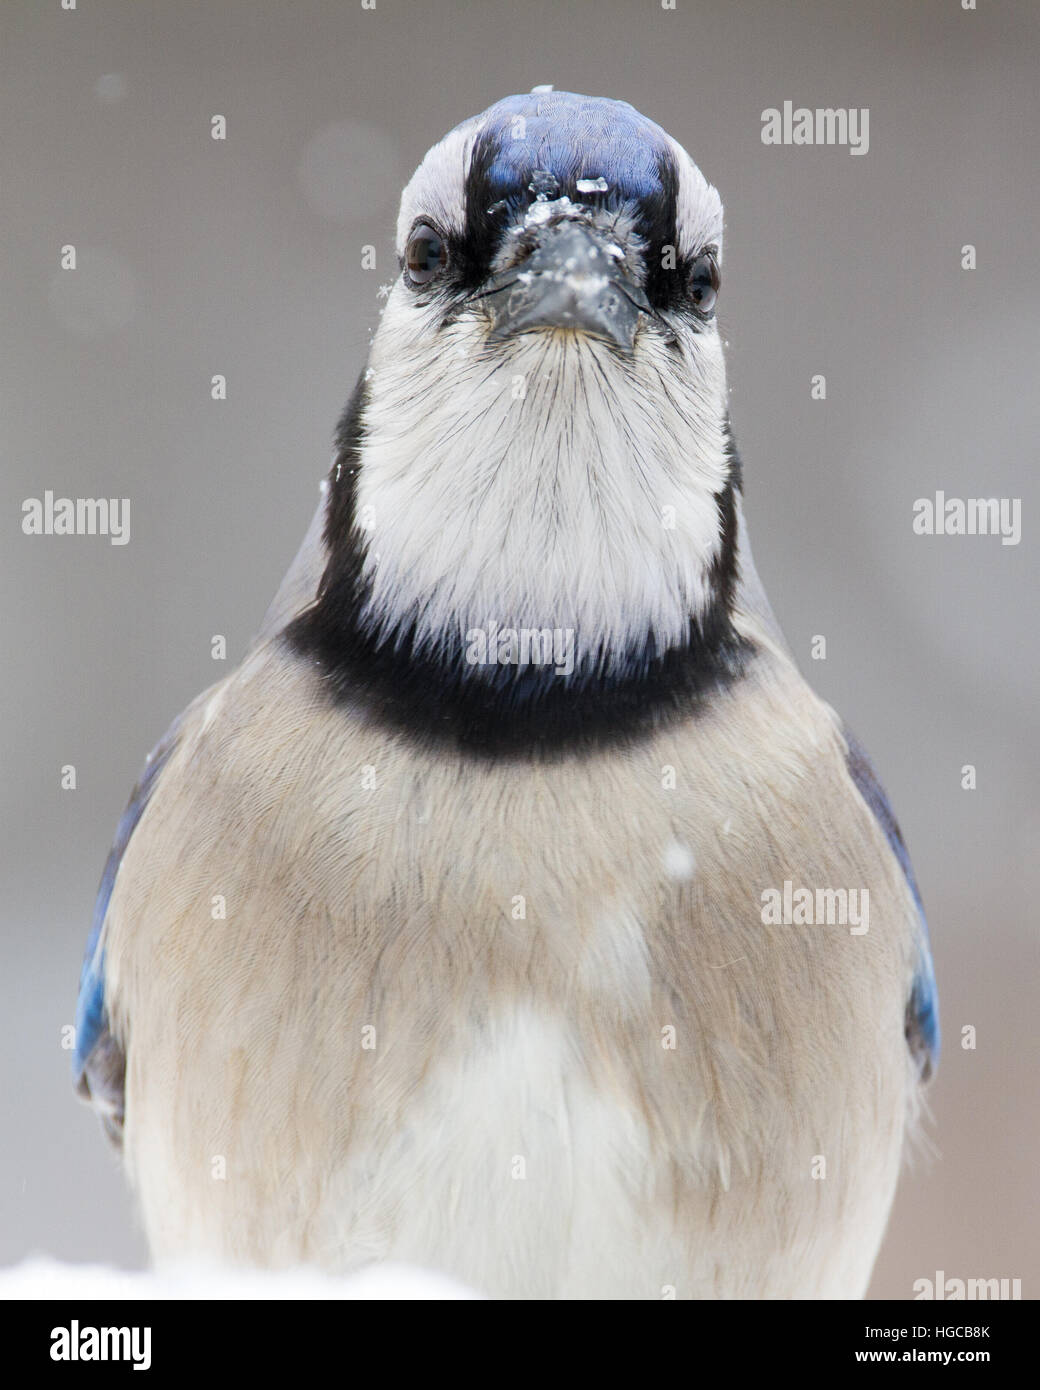 A portrait of a blue jay. - Stock Image